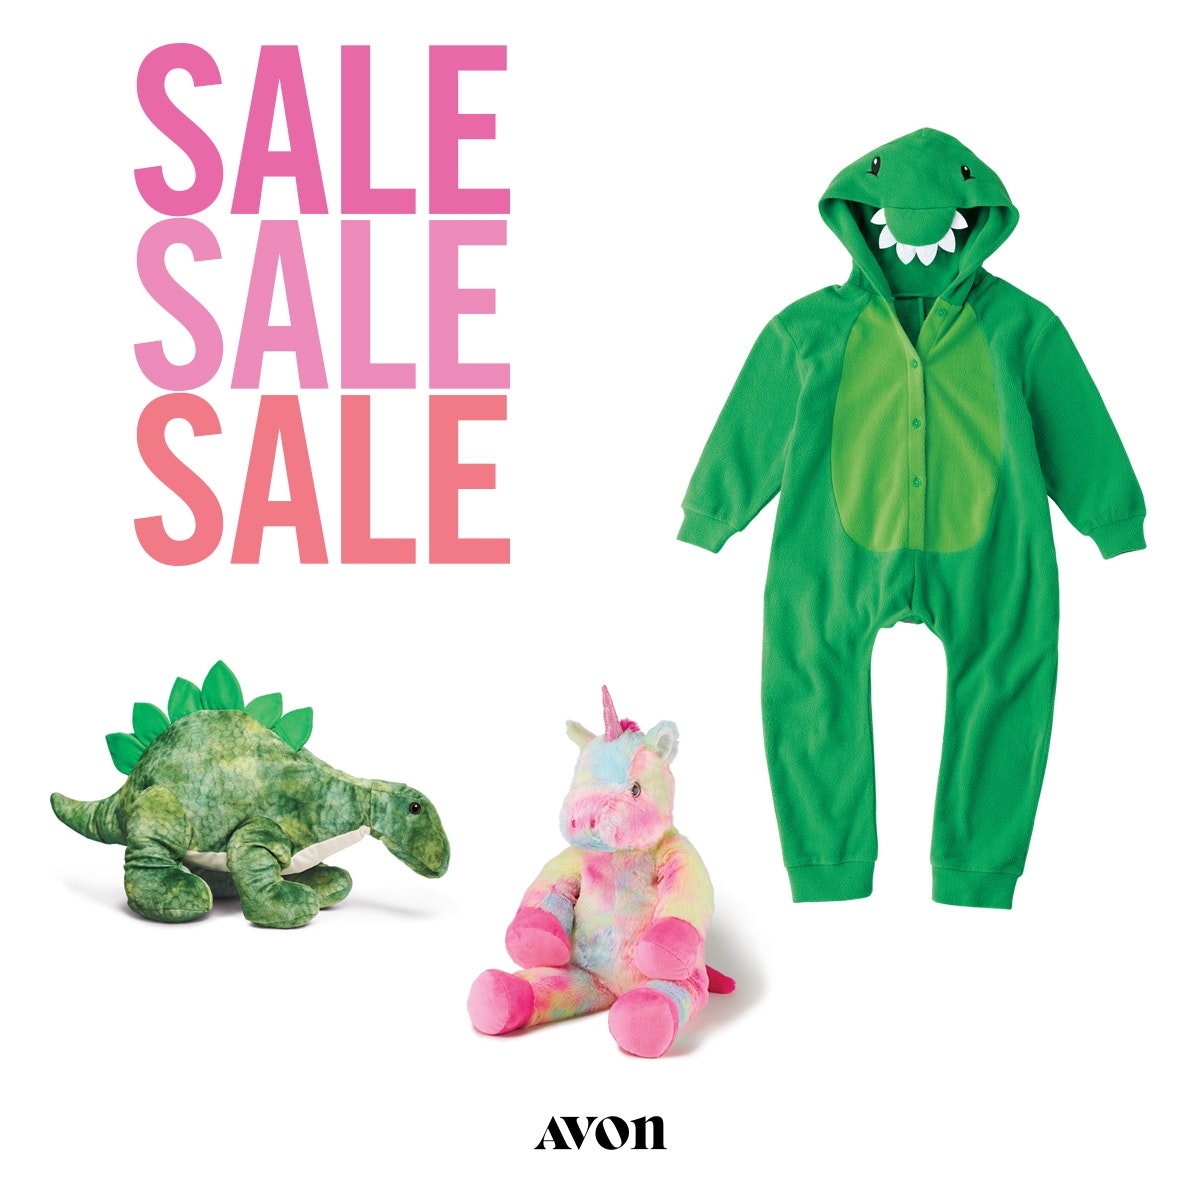 Dinosaur Playsuit and Toys from Avon's huge Sale, Campaign 15